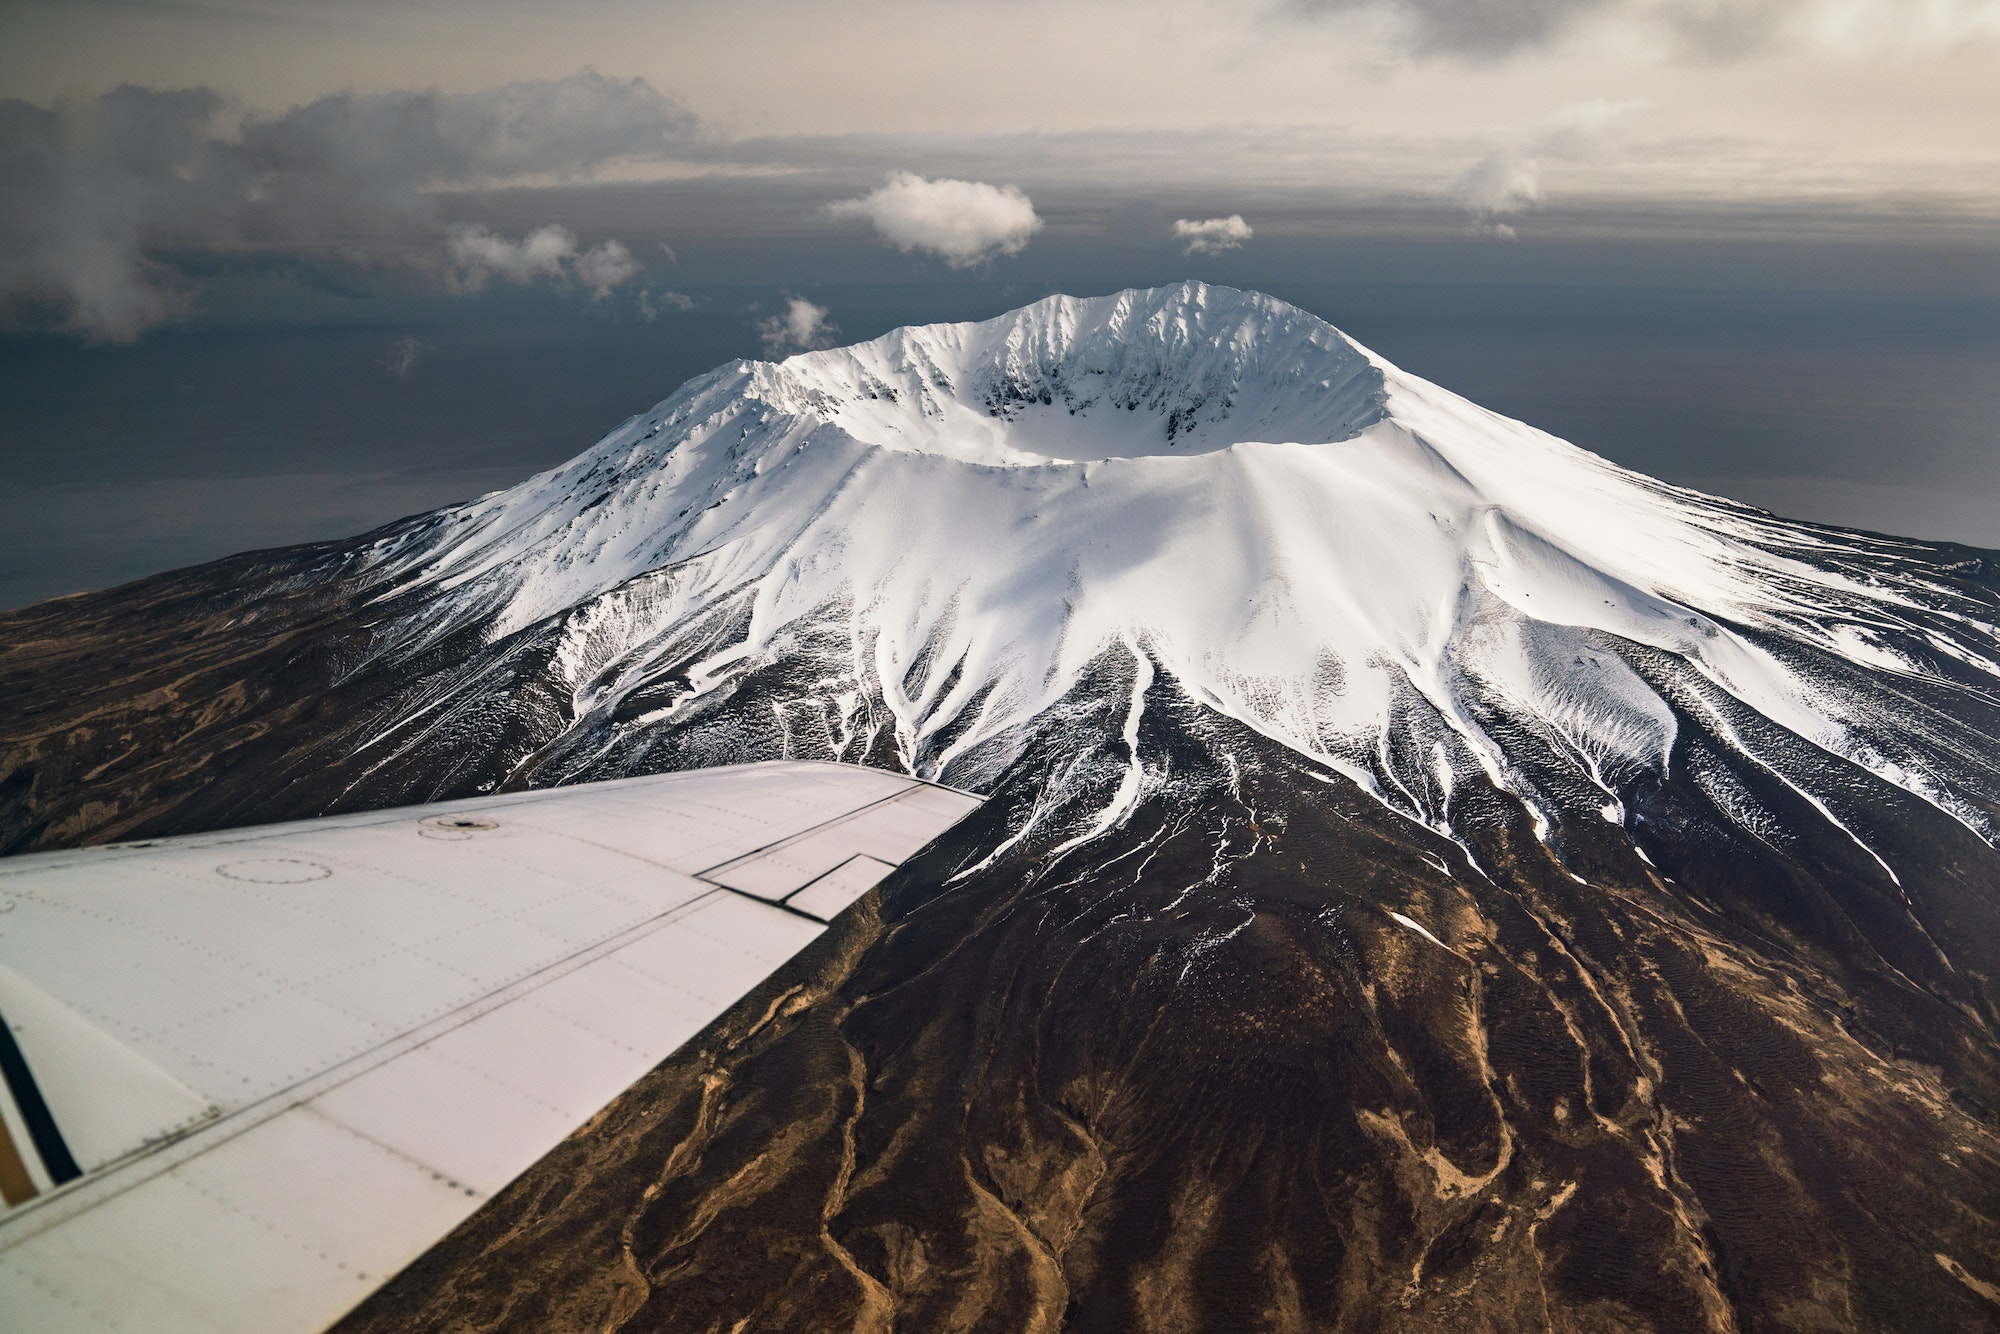 Situated between the Pacific Ocean and the Bering Sea, the Aleutian Islands occupy a total area of 6,821 square miles.